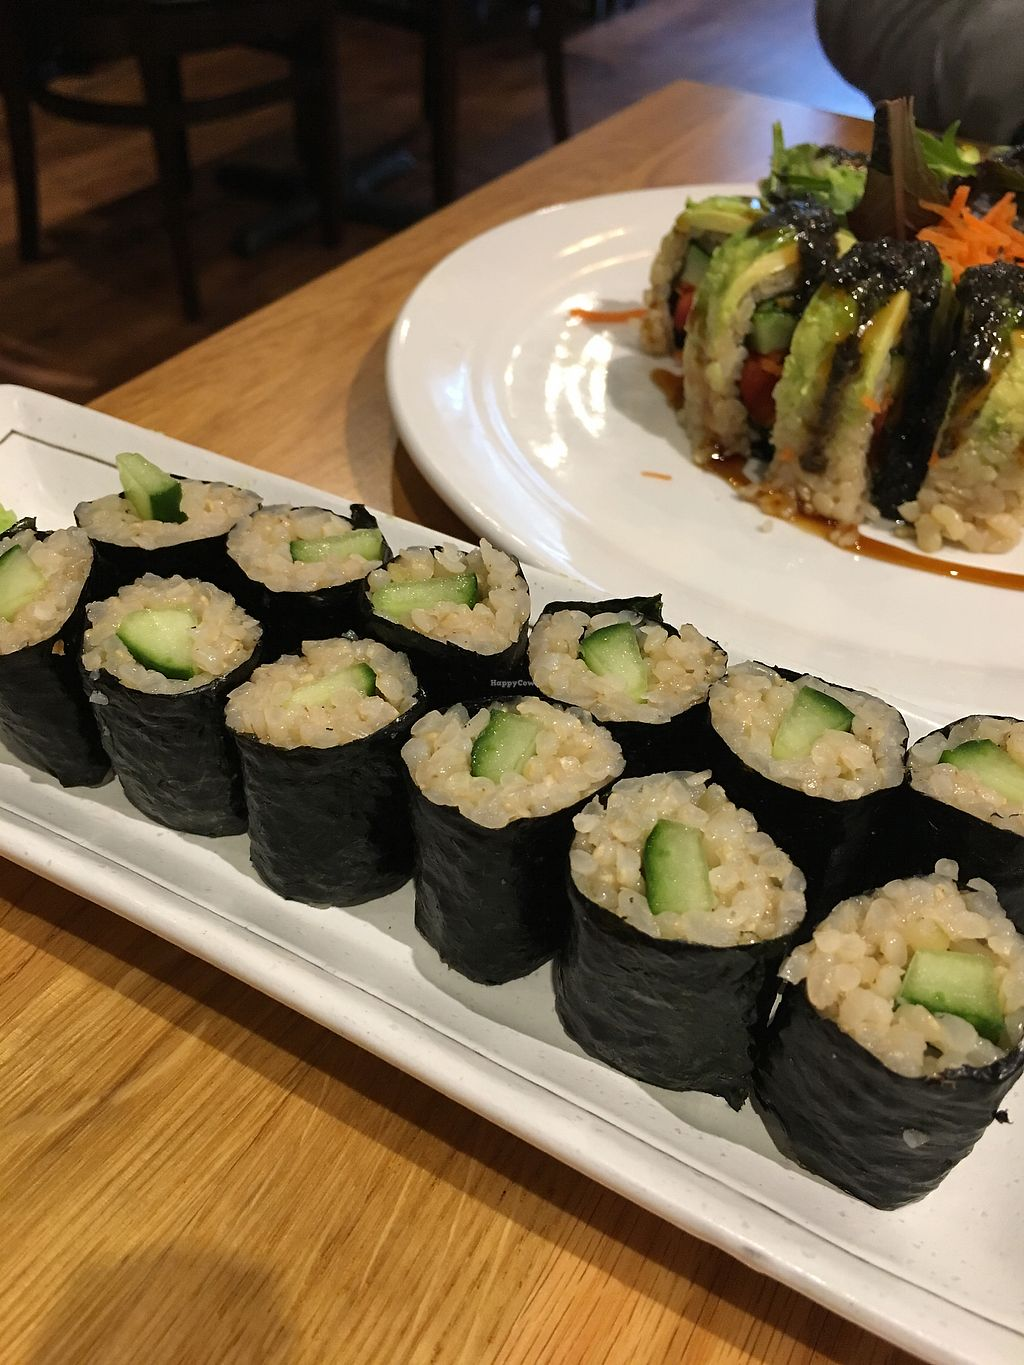 """Photo of Shizenya - Downtown  by <a href=""""/members/profile/Siup"""">Siup</a> <br/>Cucumber rolls <br/> March 21, 2018  - <a href='/contact/abuse/image/87440/373540'>Report</a>"""